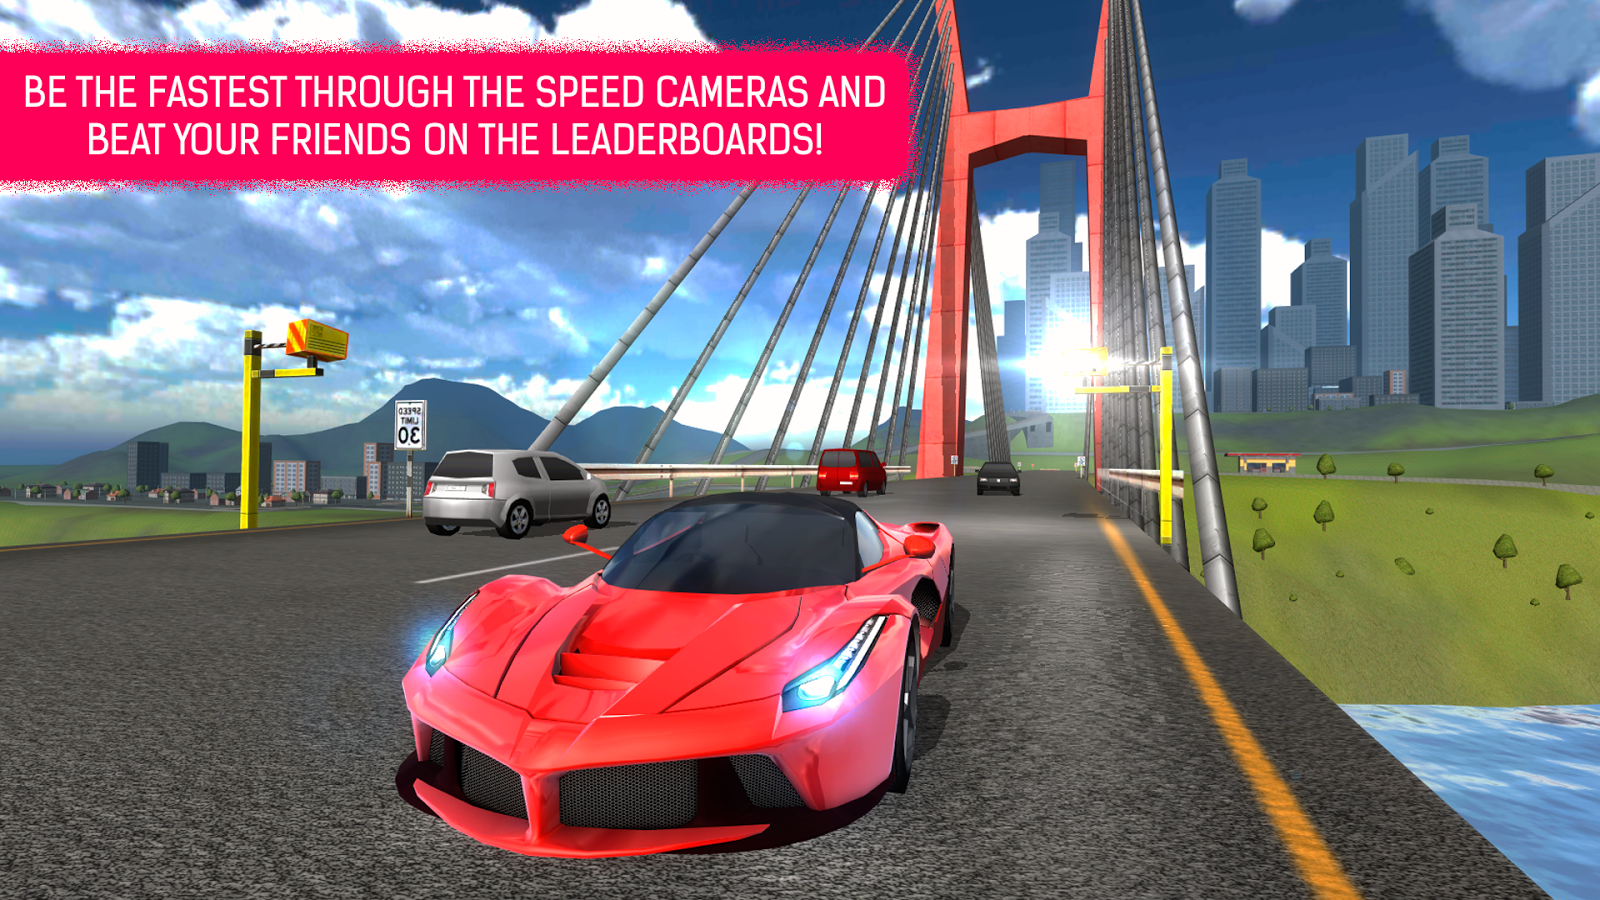 Action Car Racing Games Play Online